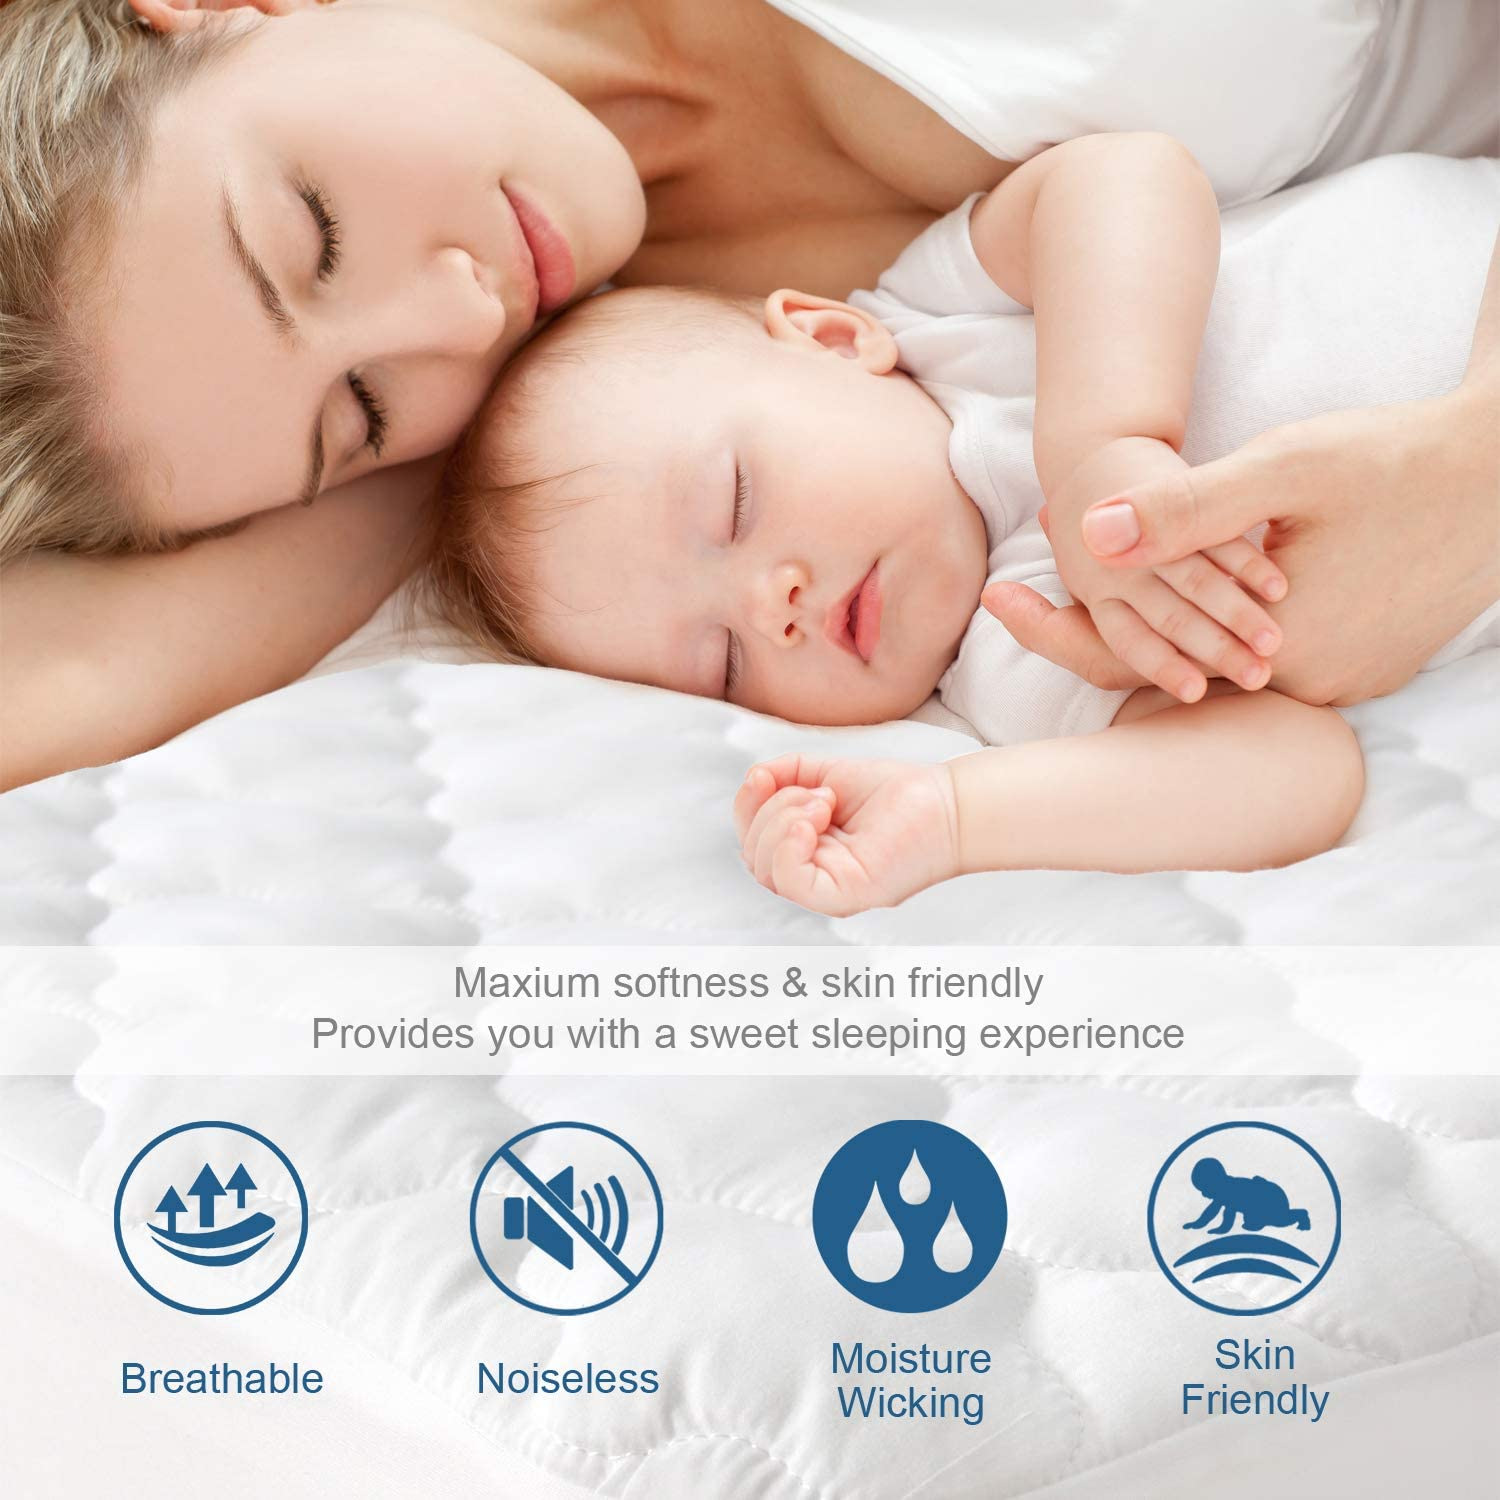 SPRINGSPIRIT Mattress Protector Twin Szie Stain Protection Deep Pocket Strethes up to 18 Depth Quilted Fitted Waterproof Twin Mattress Pad Cover with Ultra Soft /& Aborsbent Surface